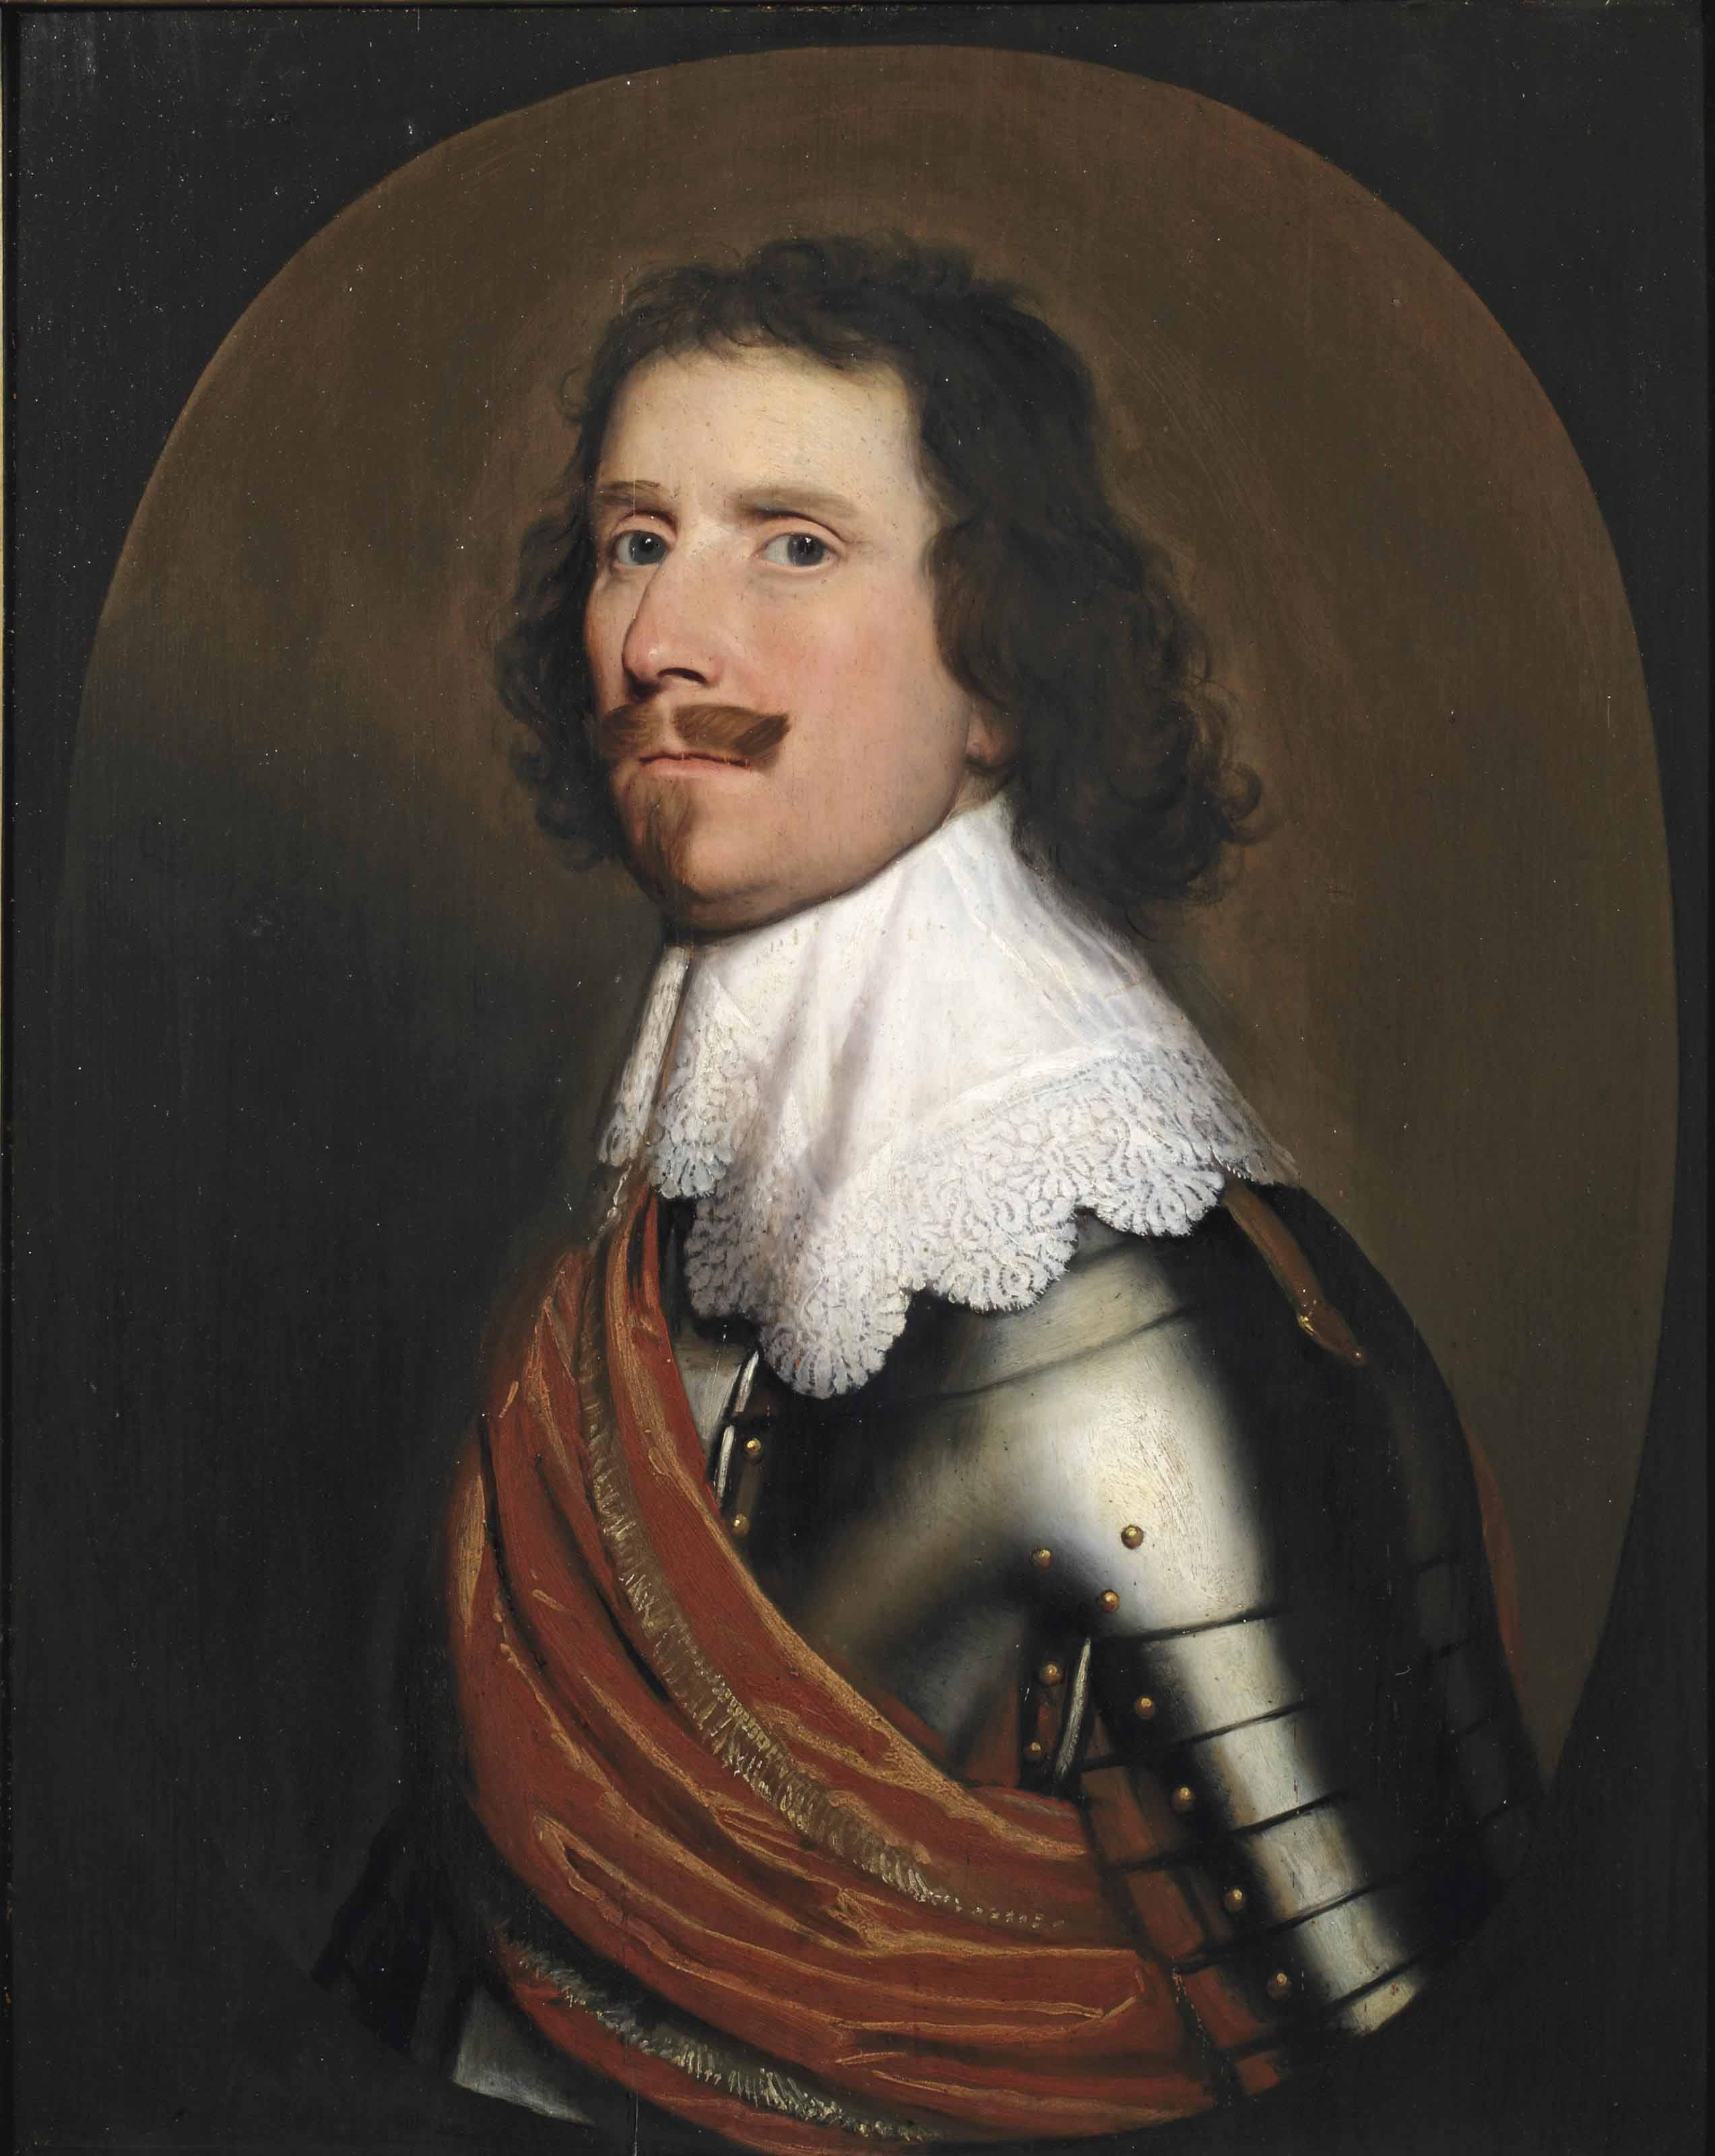 Portrait of a nobleman, half-length, in armor with a white lace collar and an orange sash, in a painted oval